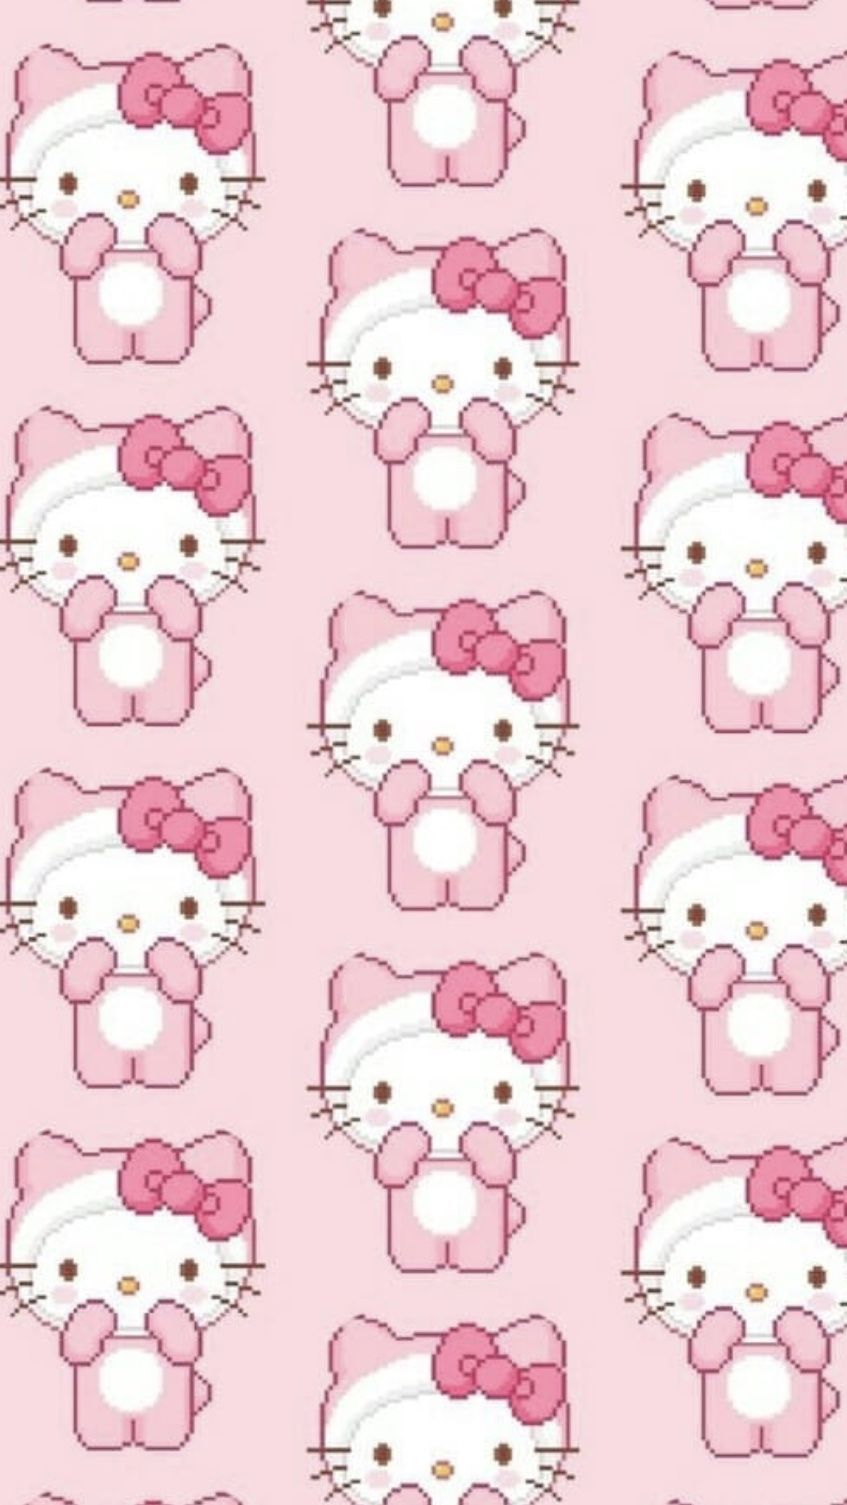 Pink Hello Kitty Wallpaper In 2020 Pink Hello Kitty Hello Kitty Backgrounds Hello Kitty Wallpaper